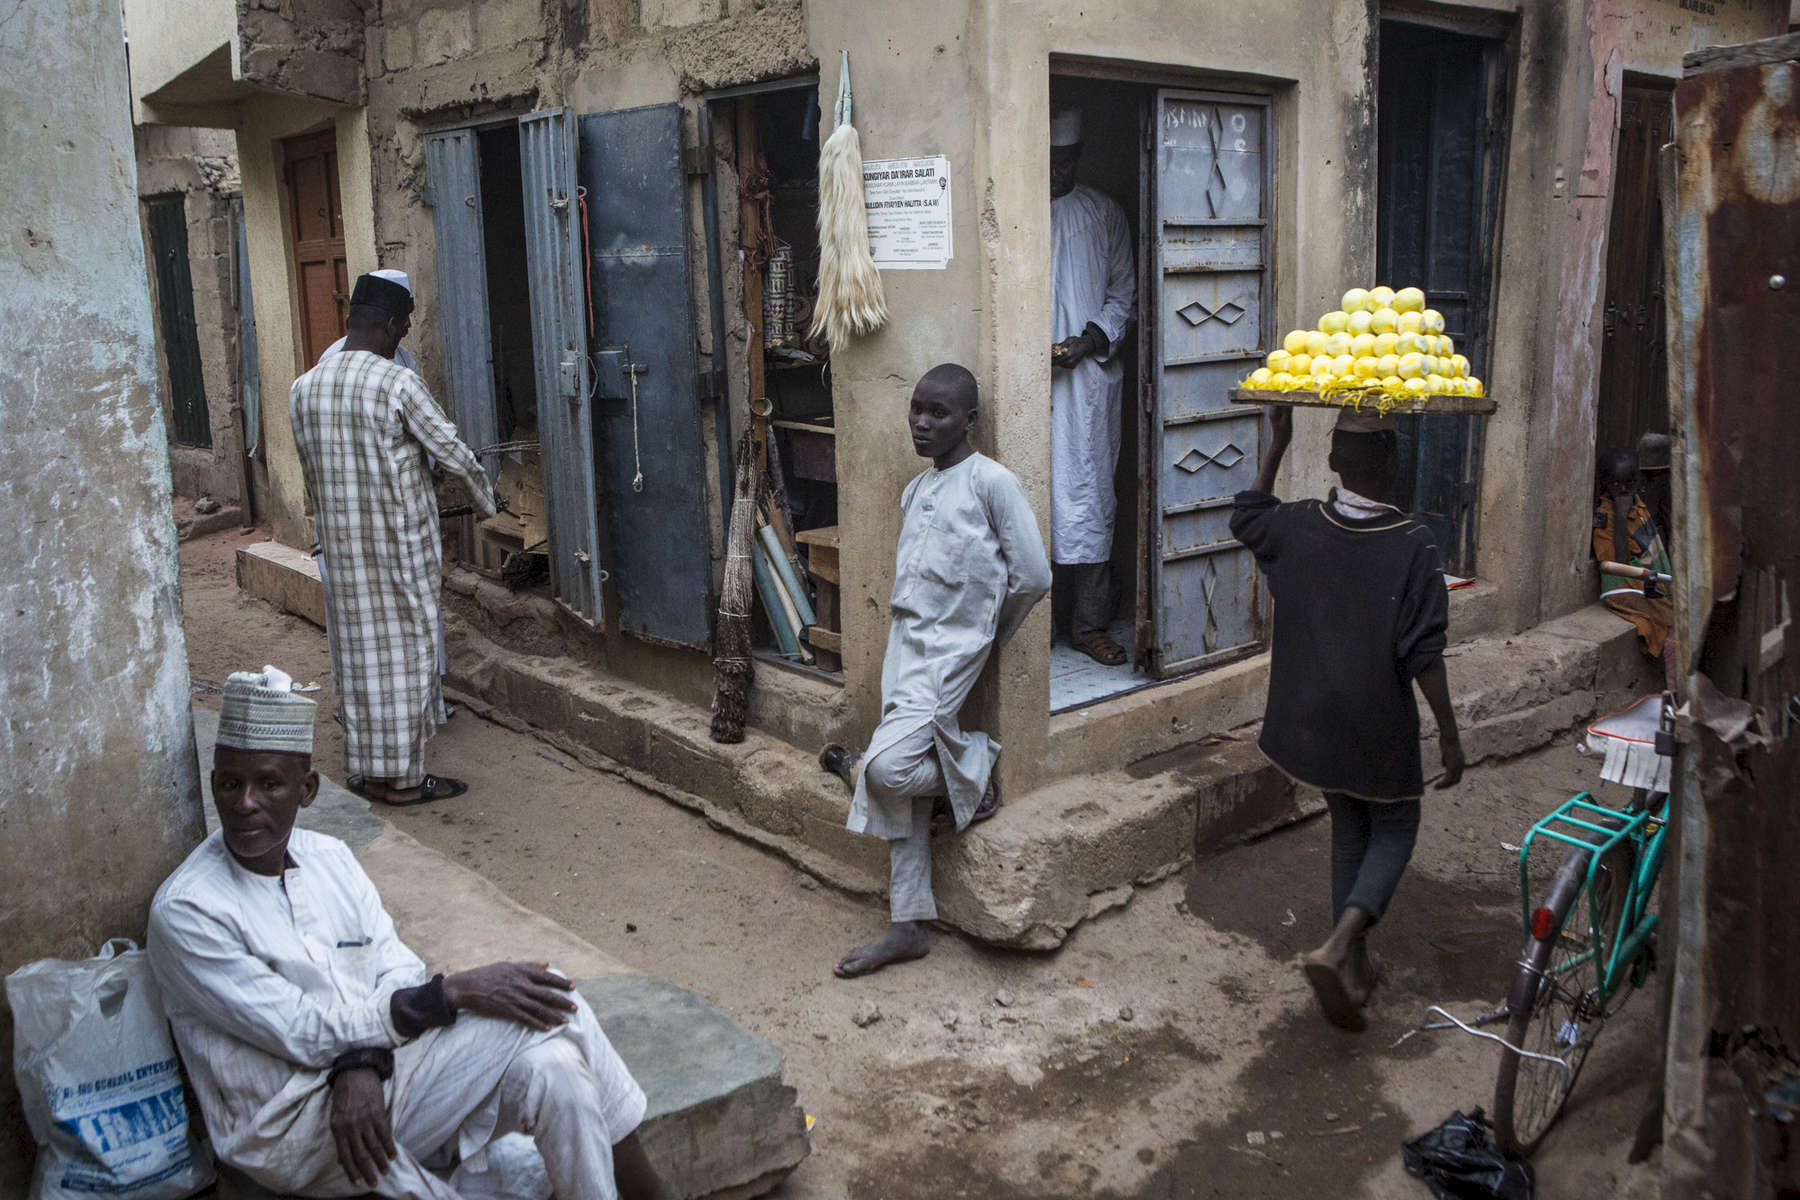 Kano, Nigeria- Men close their shops at the end of the day at the Kurmi Market in the Old City of  Kano, Nigeria on Tuesday, January 16, 2018.(Photo by Jane Hahn for the Washington Post)